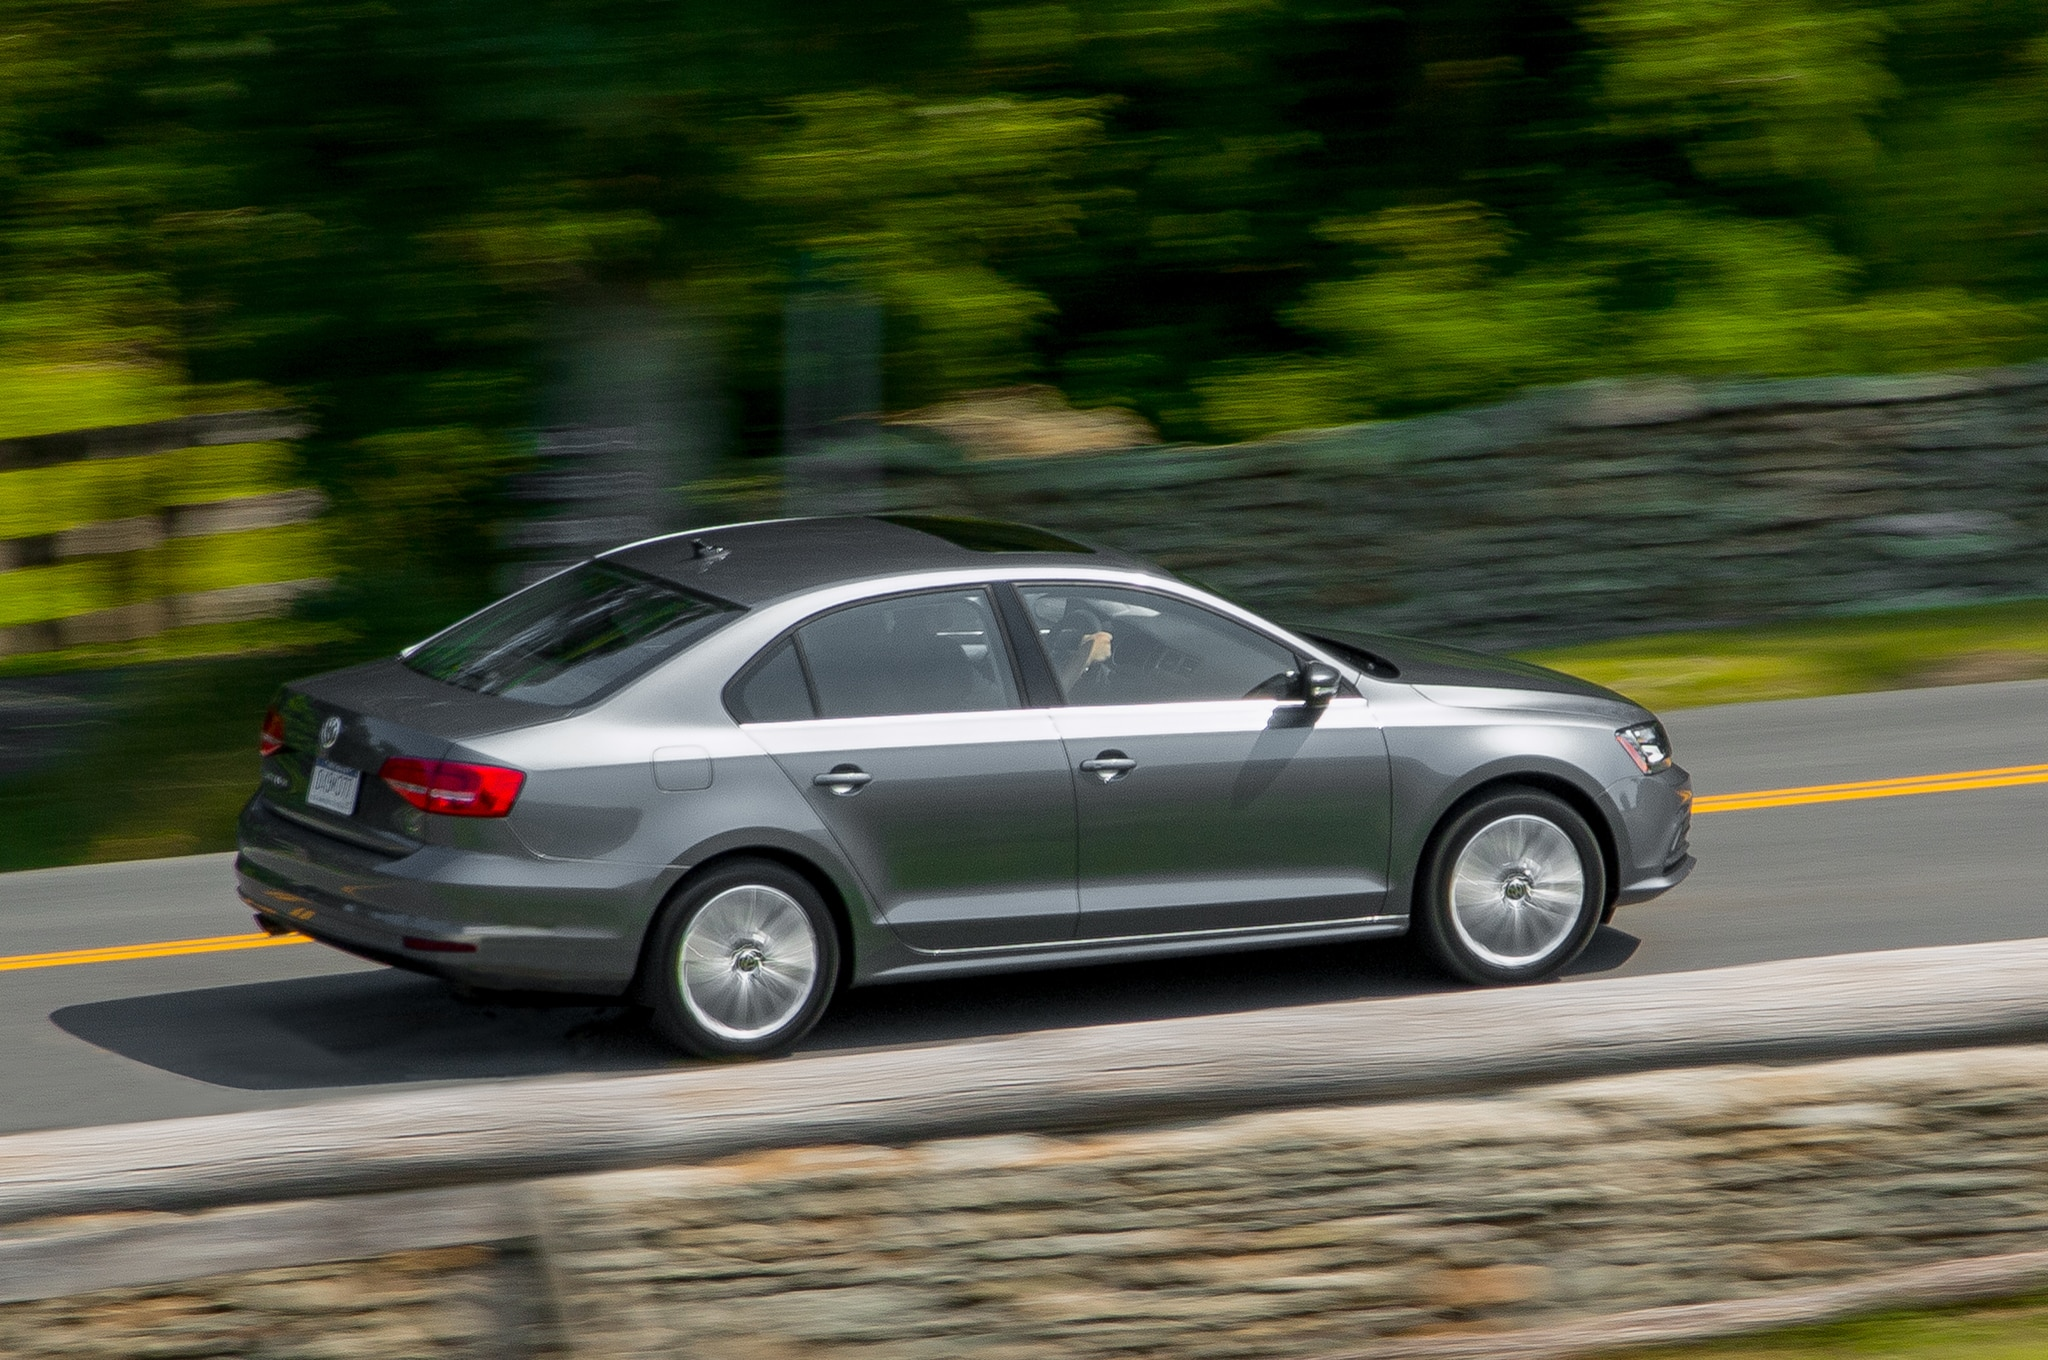 2016 Volkswagen Jetta 1.4T Rated at Up to 40 MPG